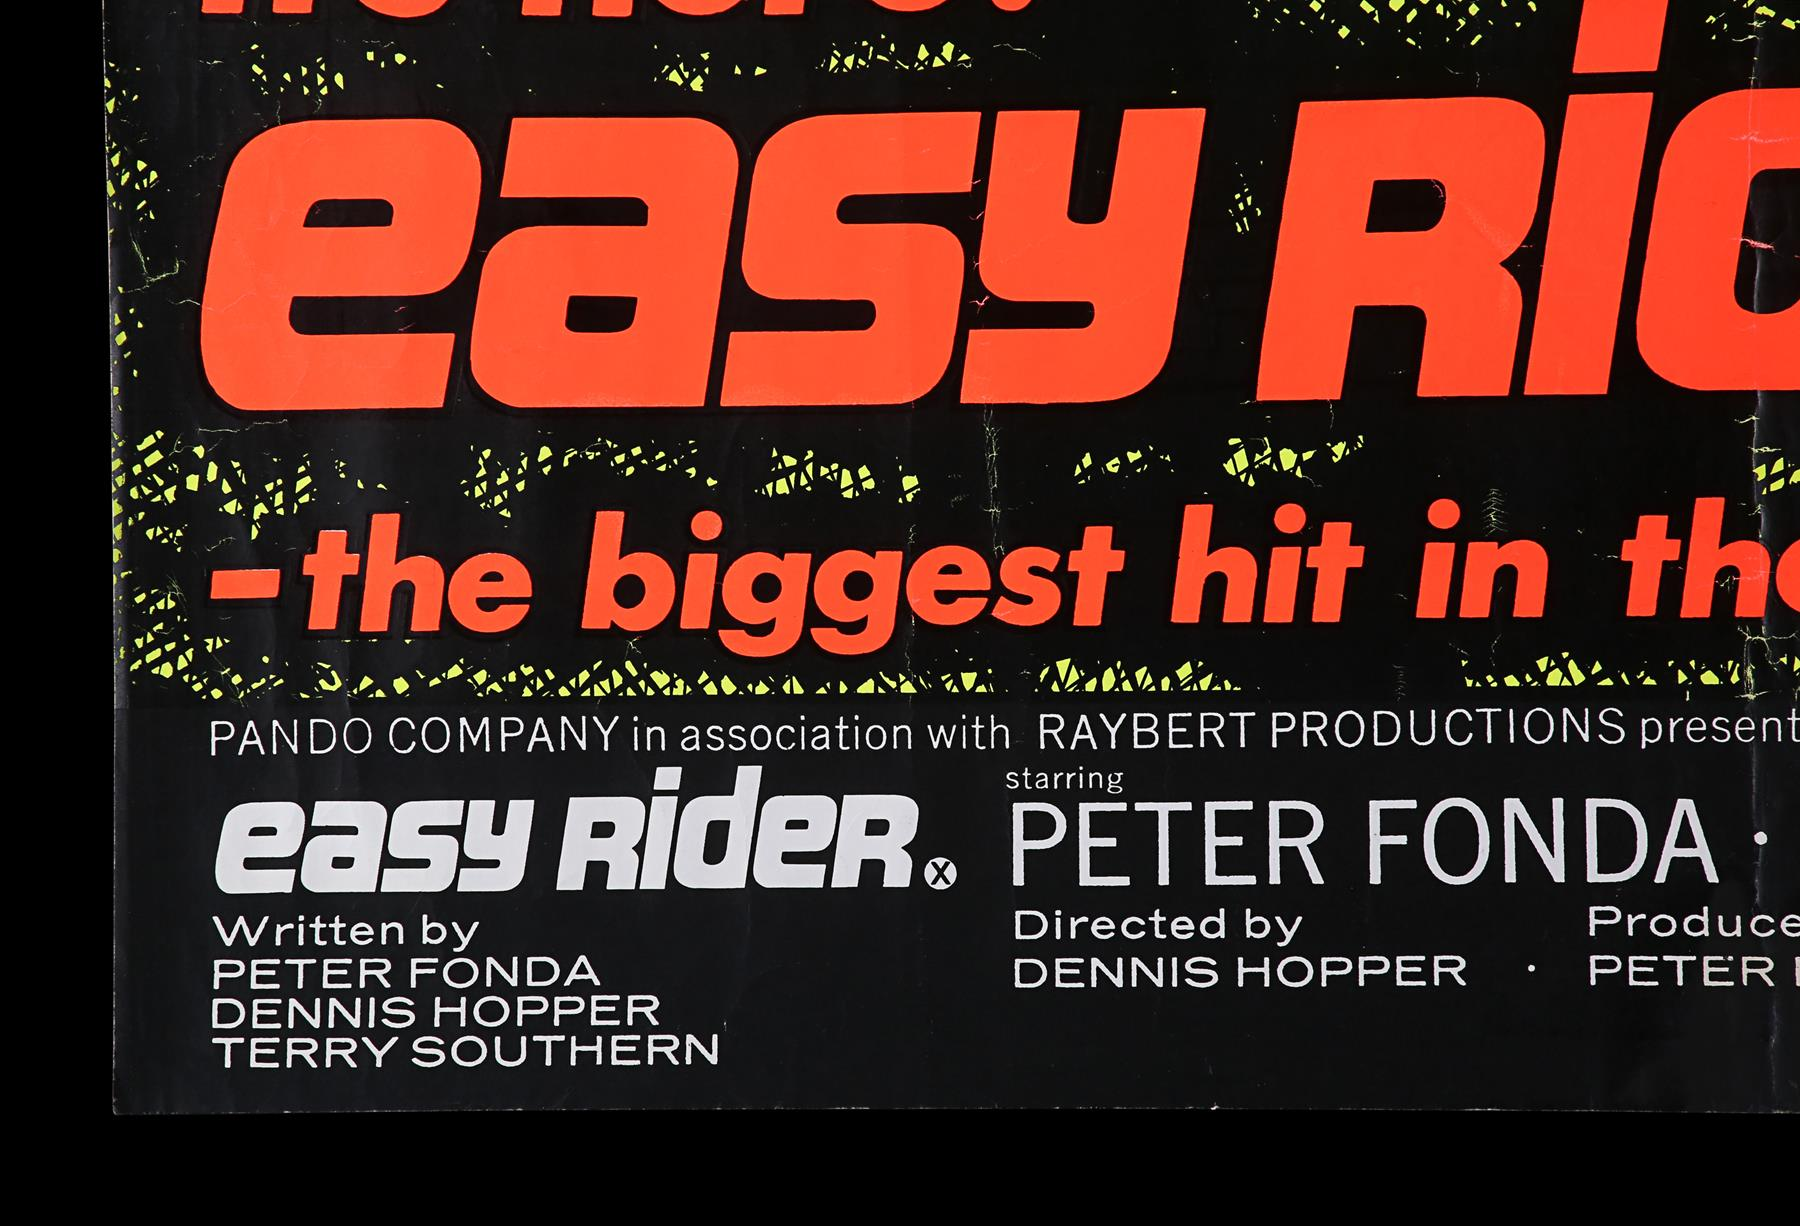 EASY RIDER (1969) - UK Quad, 1969 - Image 5 of 6